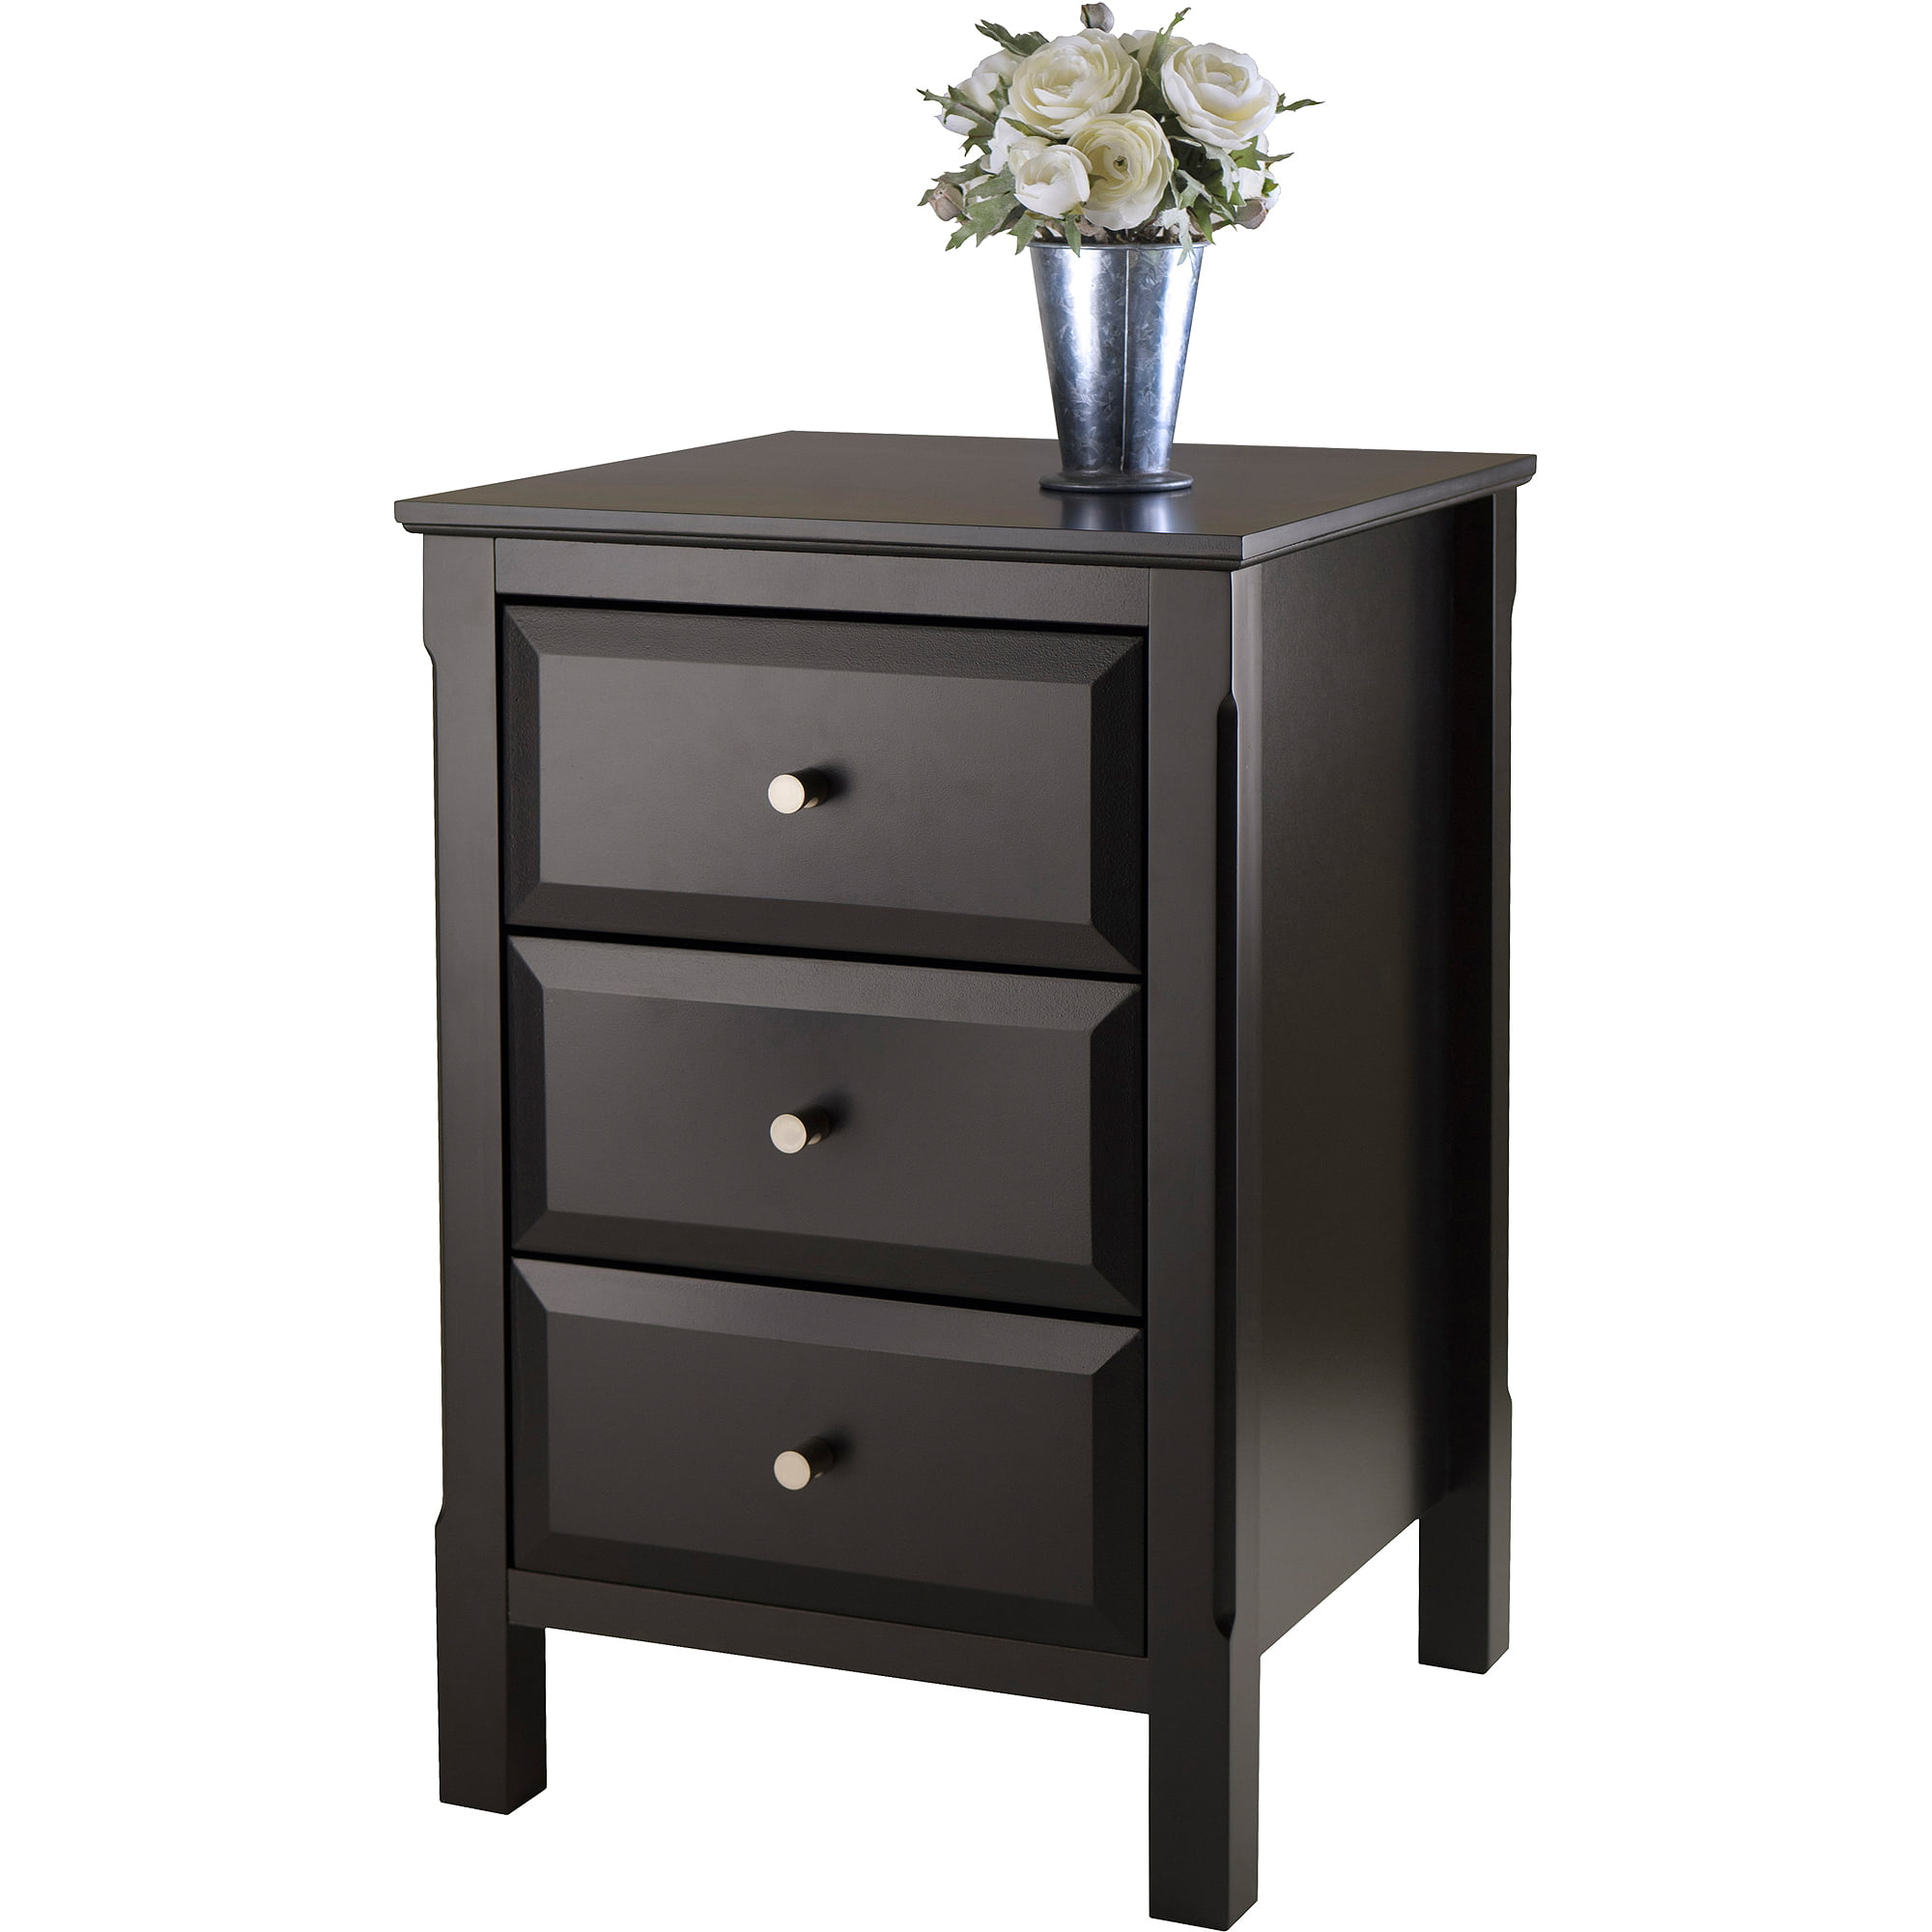 Nightstands - Walmart.com